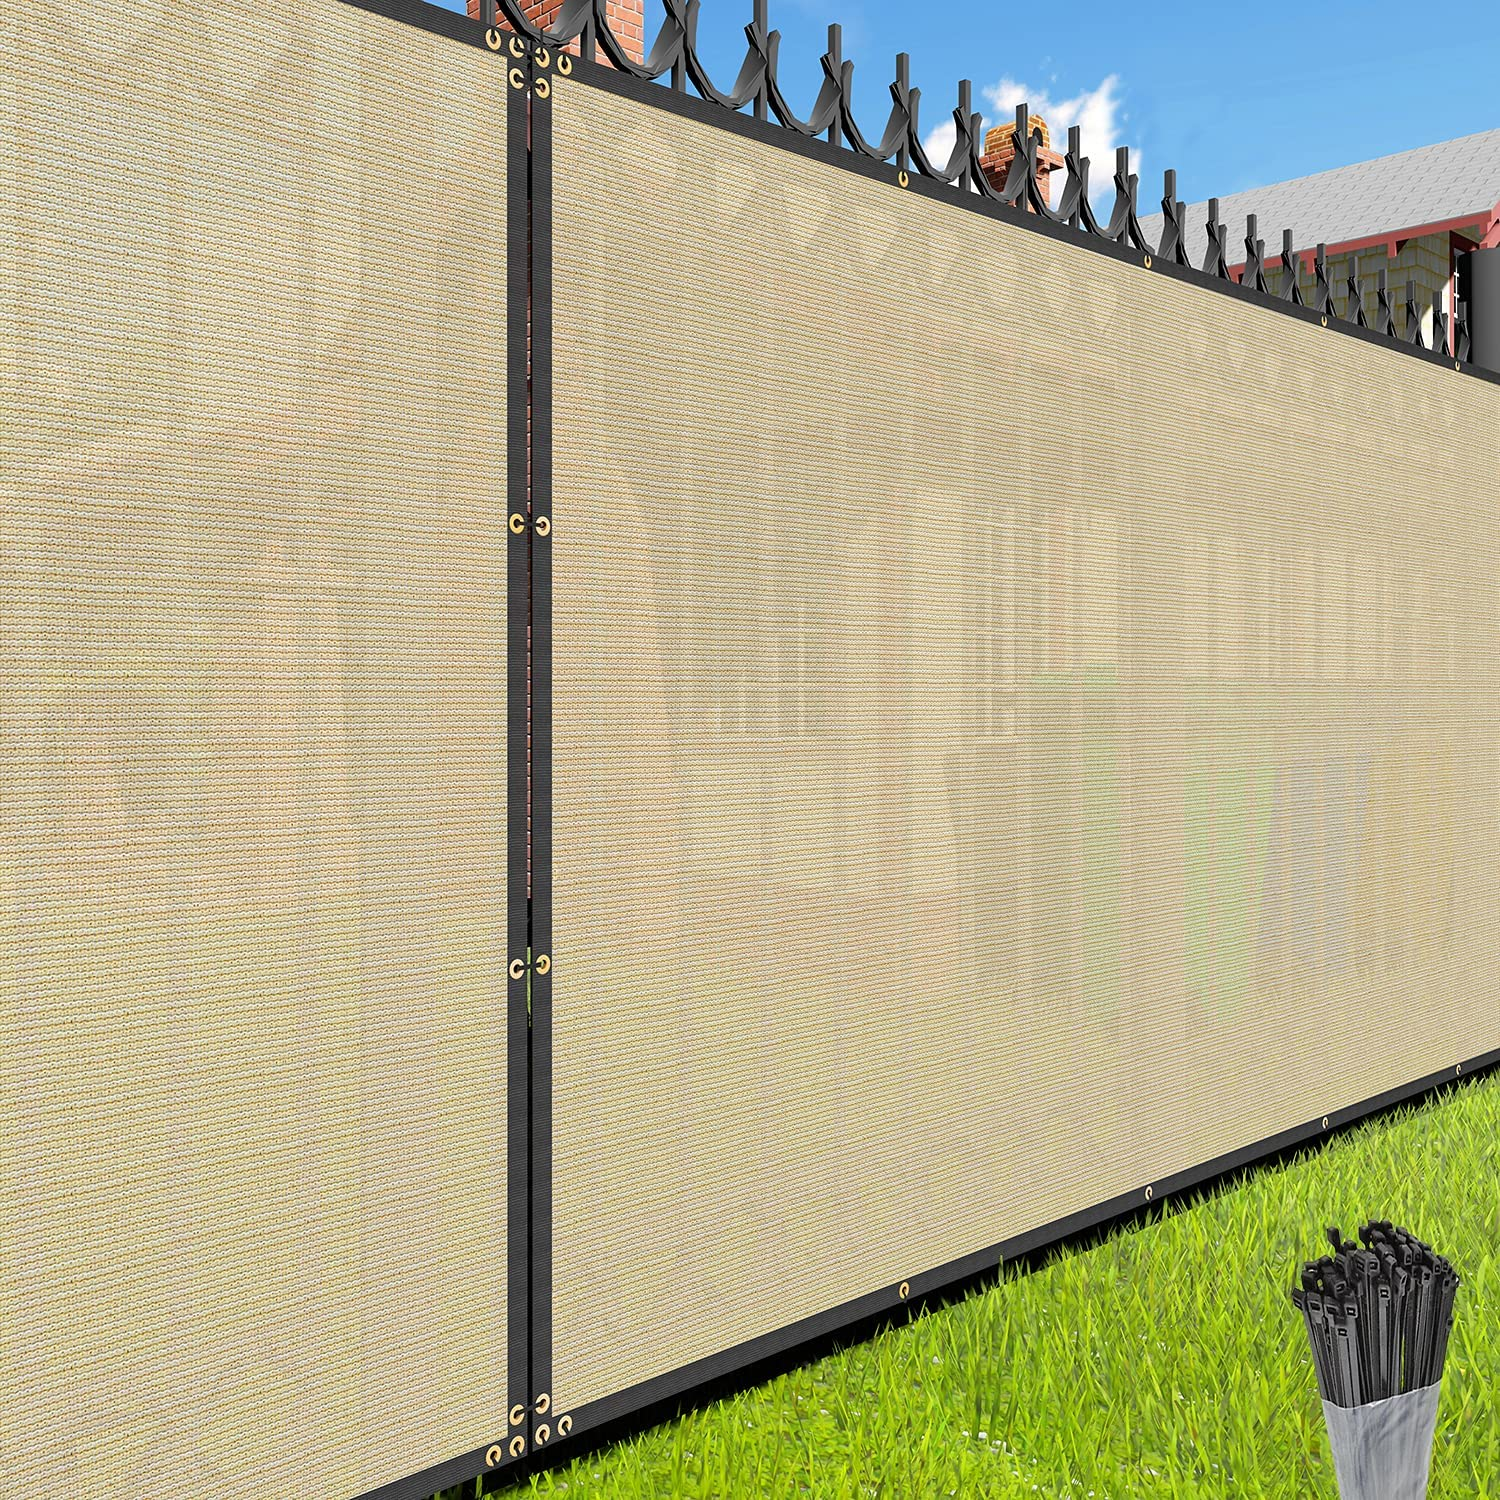 EK Sunrise Fence Challenge the lowest price of Fixed price for sale Japan Privacy Screen with C Beige x 191' 6' Zipties